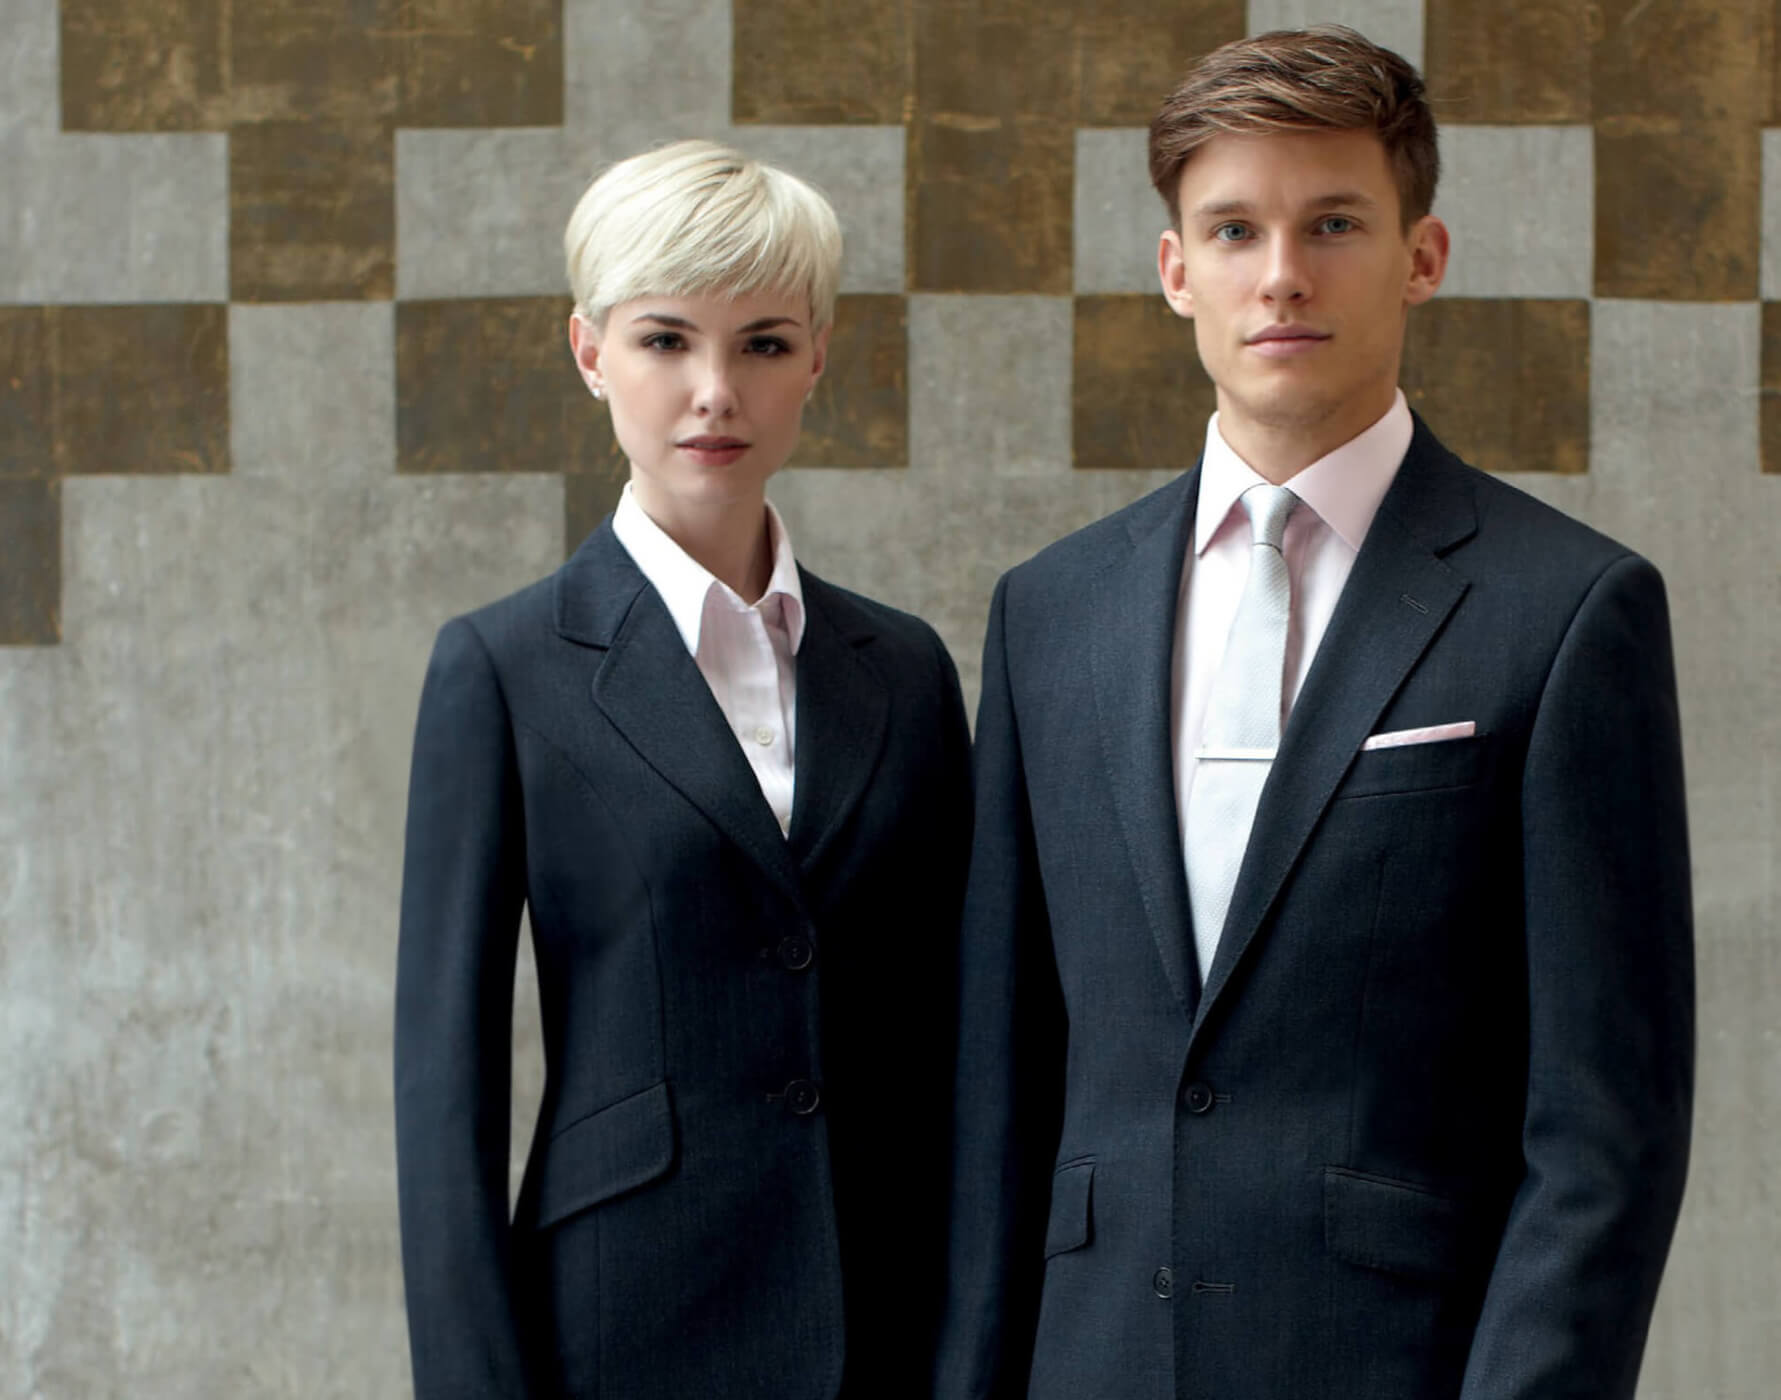 corporate clothing: man and woman in charcoal suits and pale pink shirts